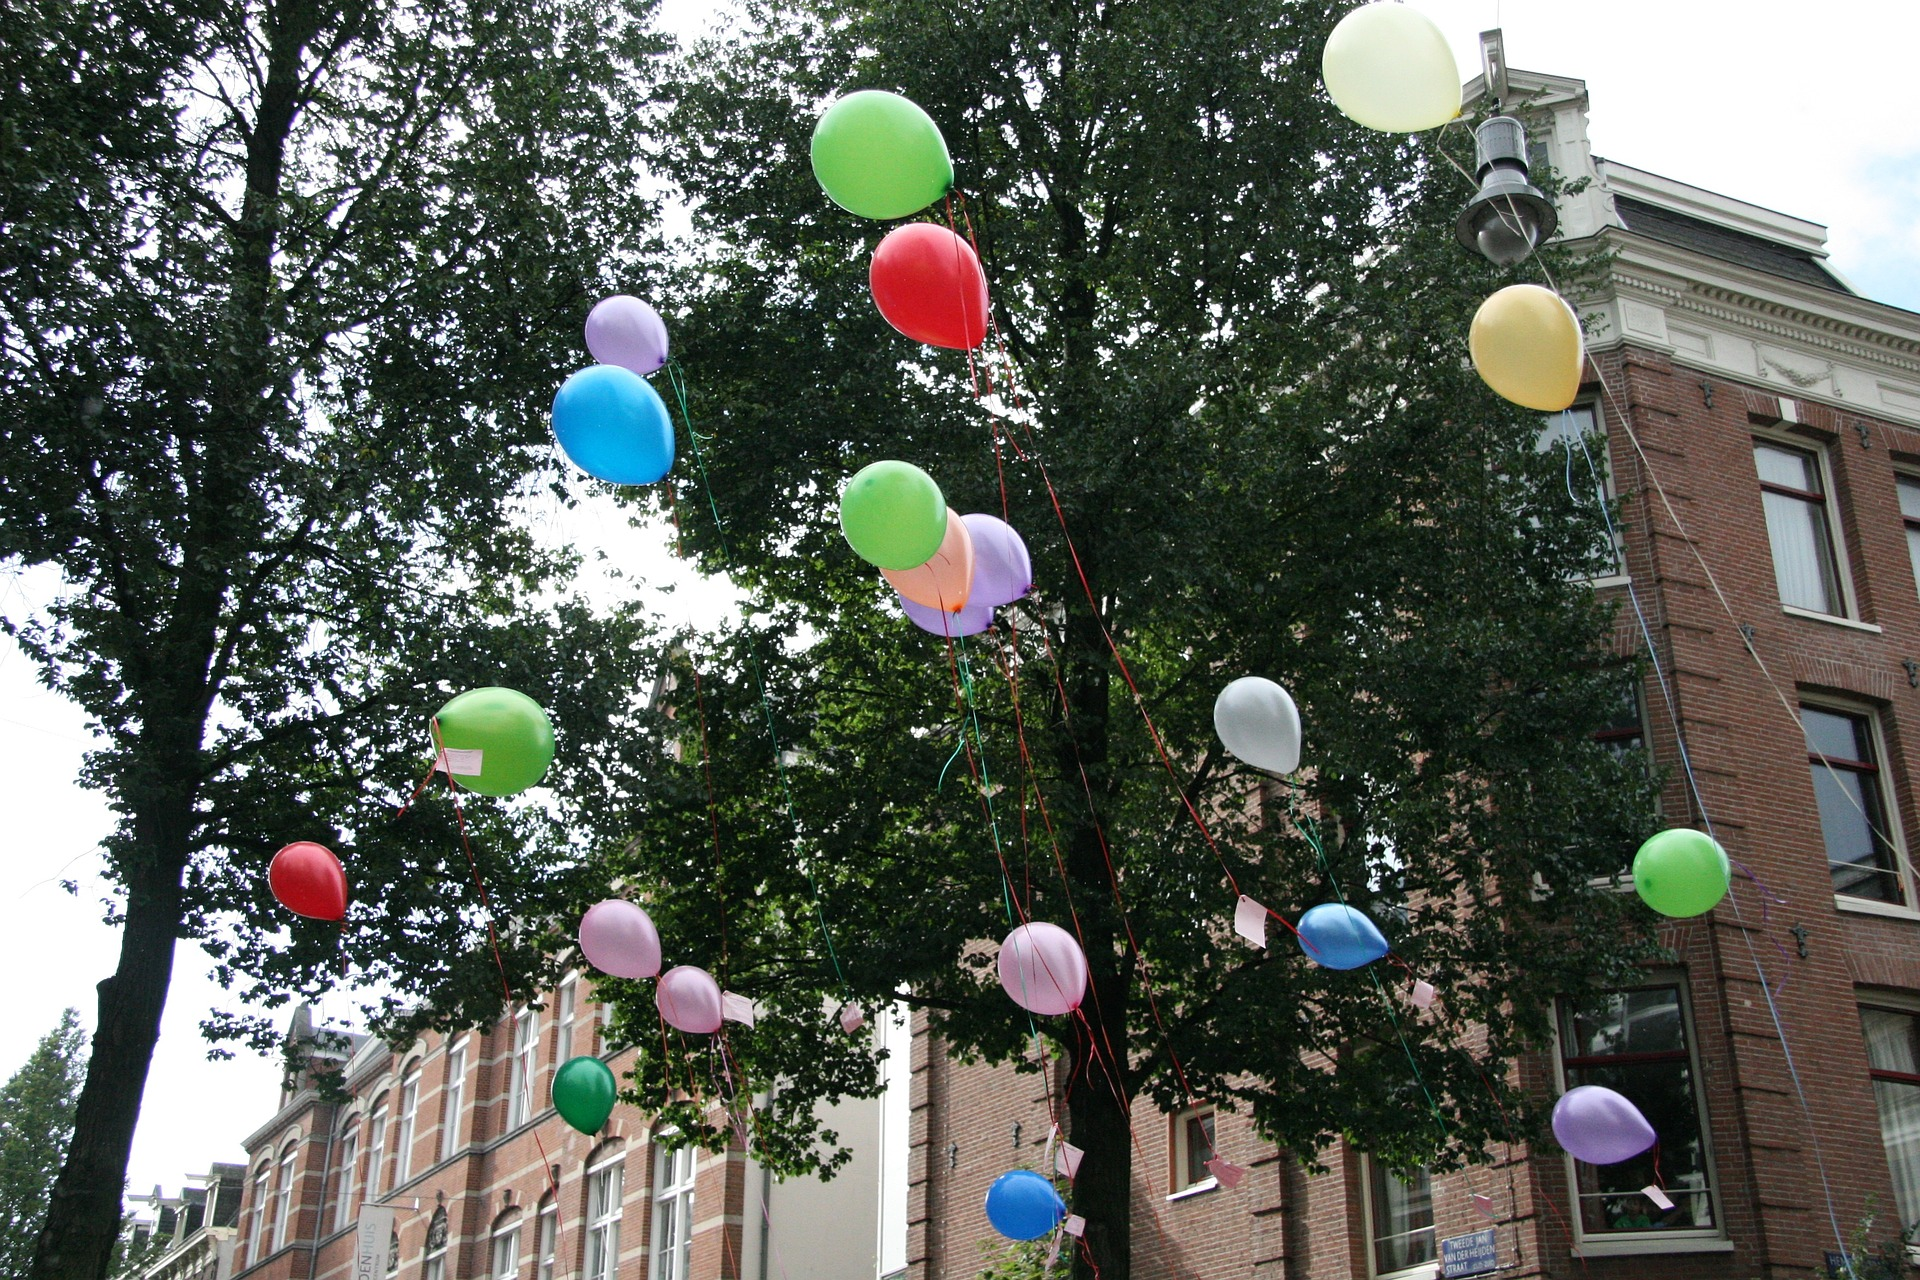 party neighbourhood celebration balloon colour celebrate good happy.jpg